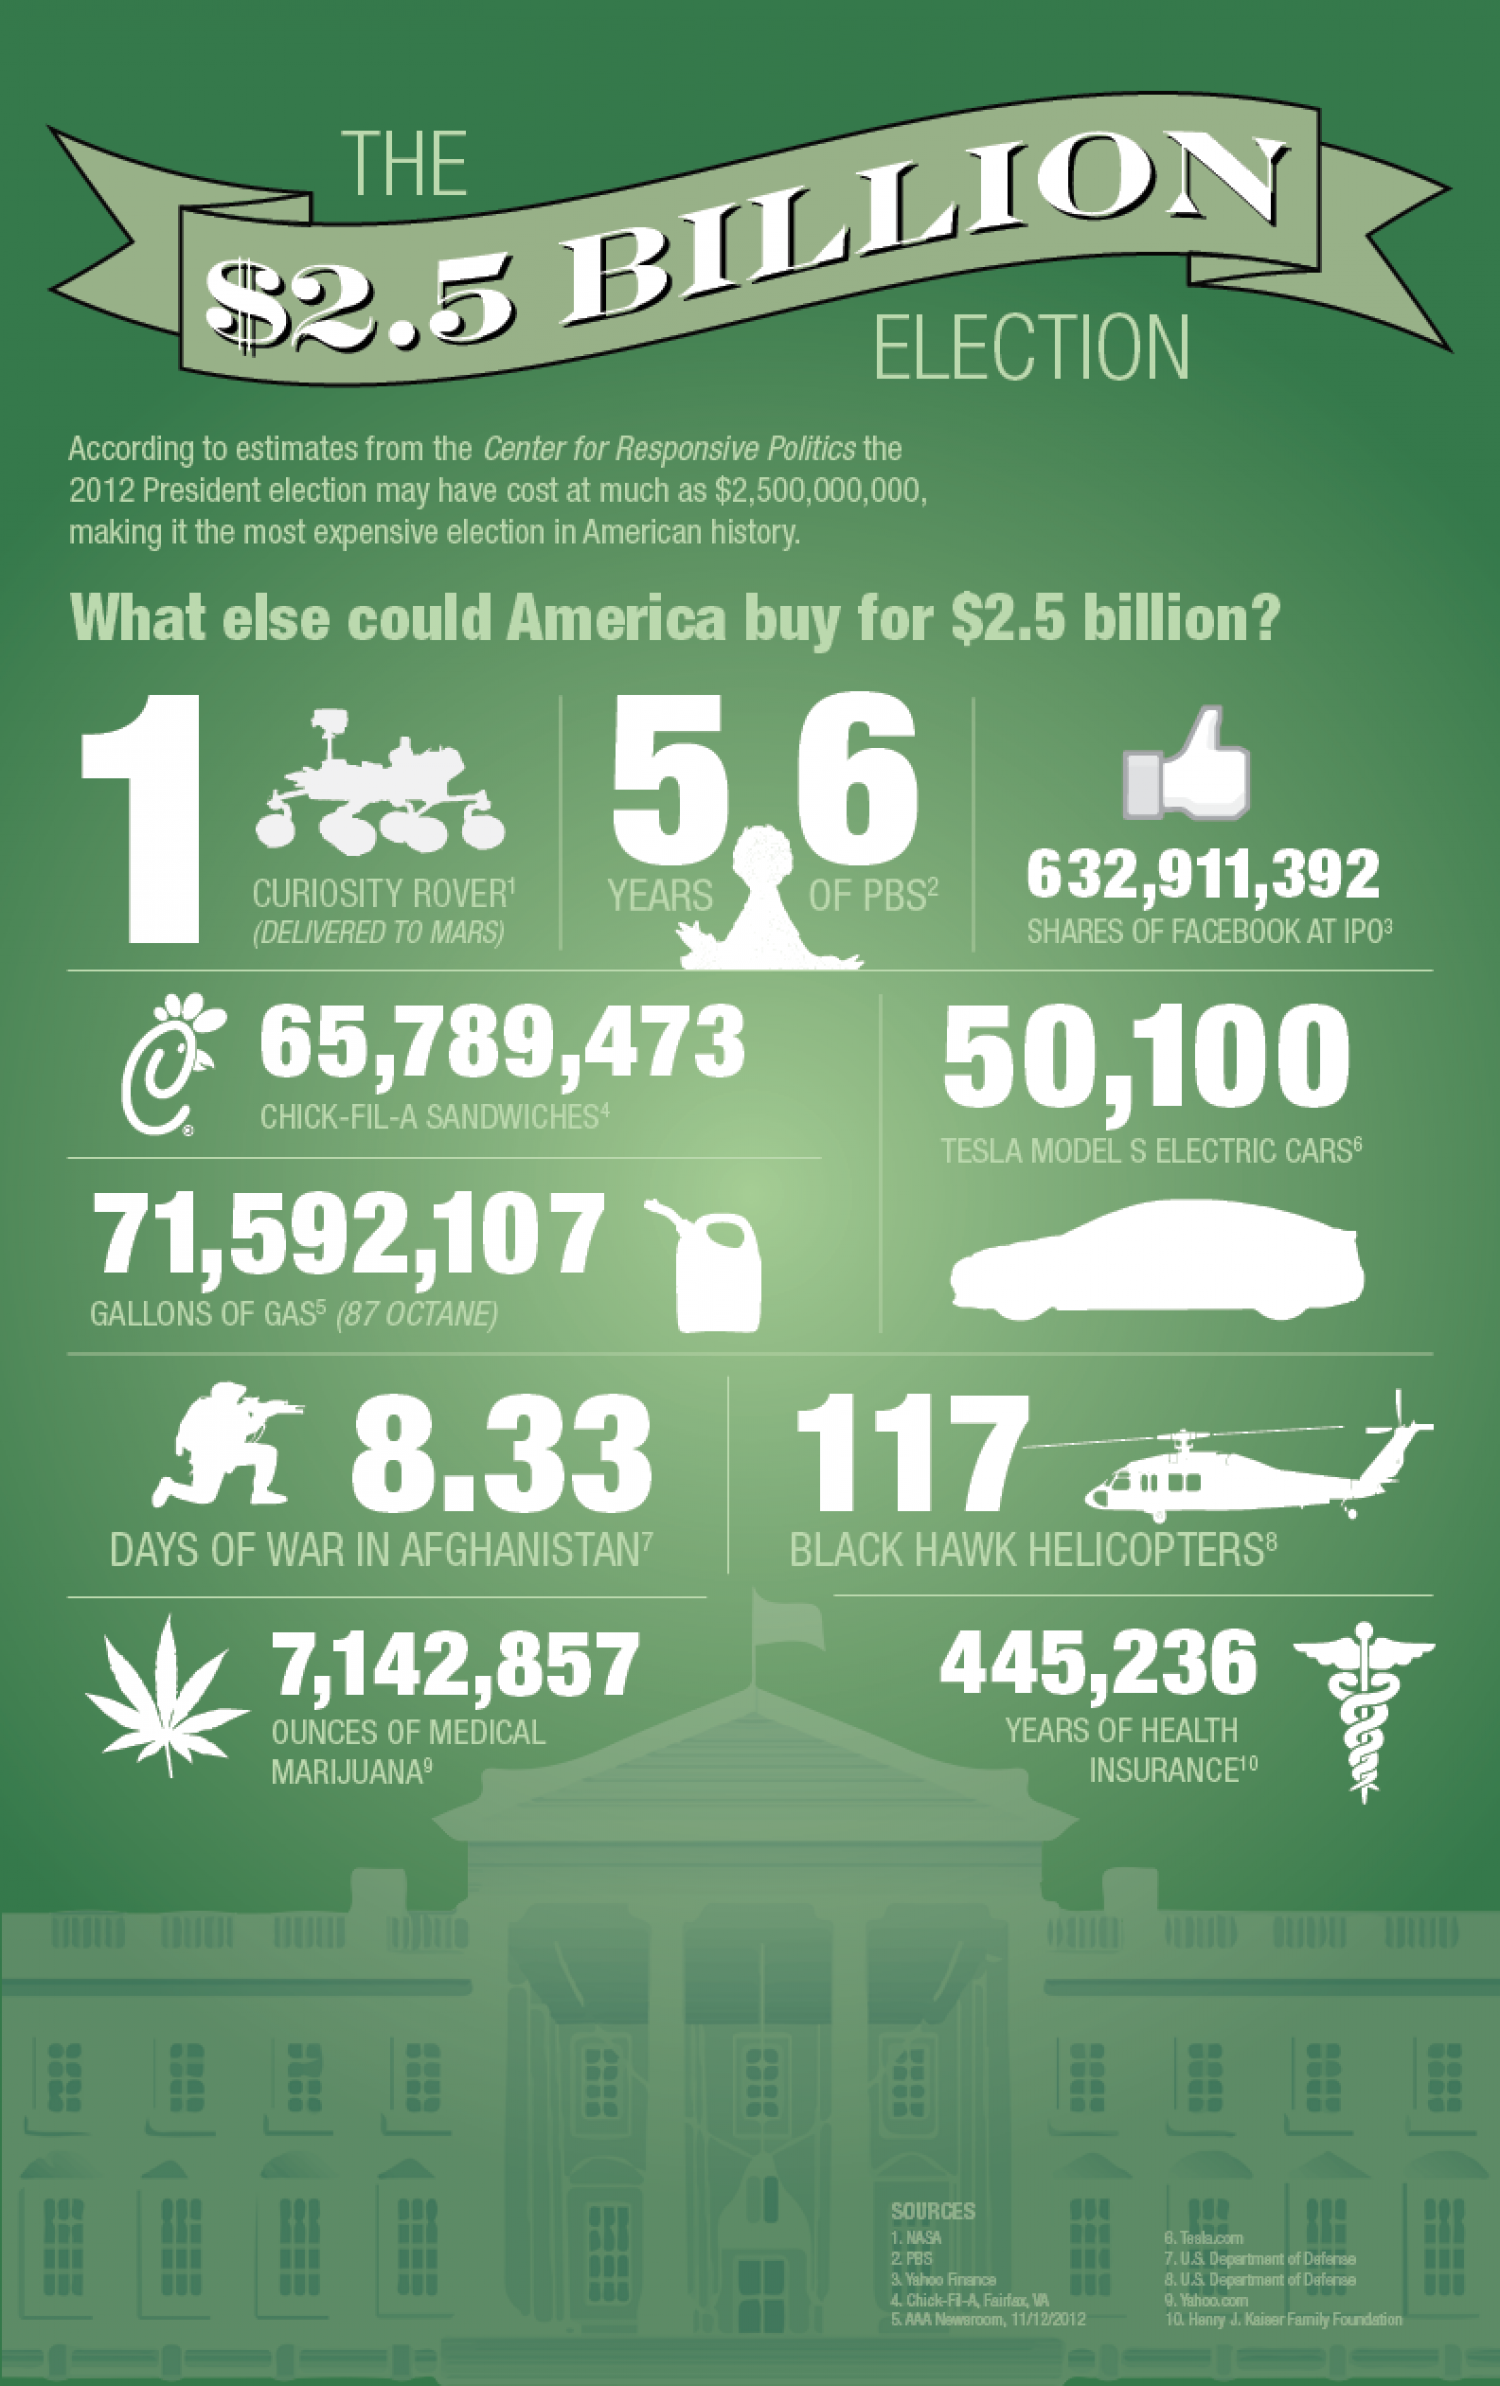 The $2.5 Billion Election Infographic